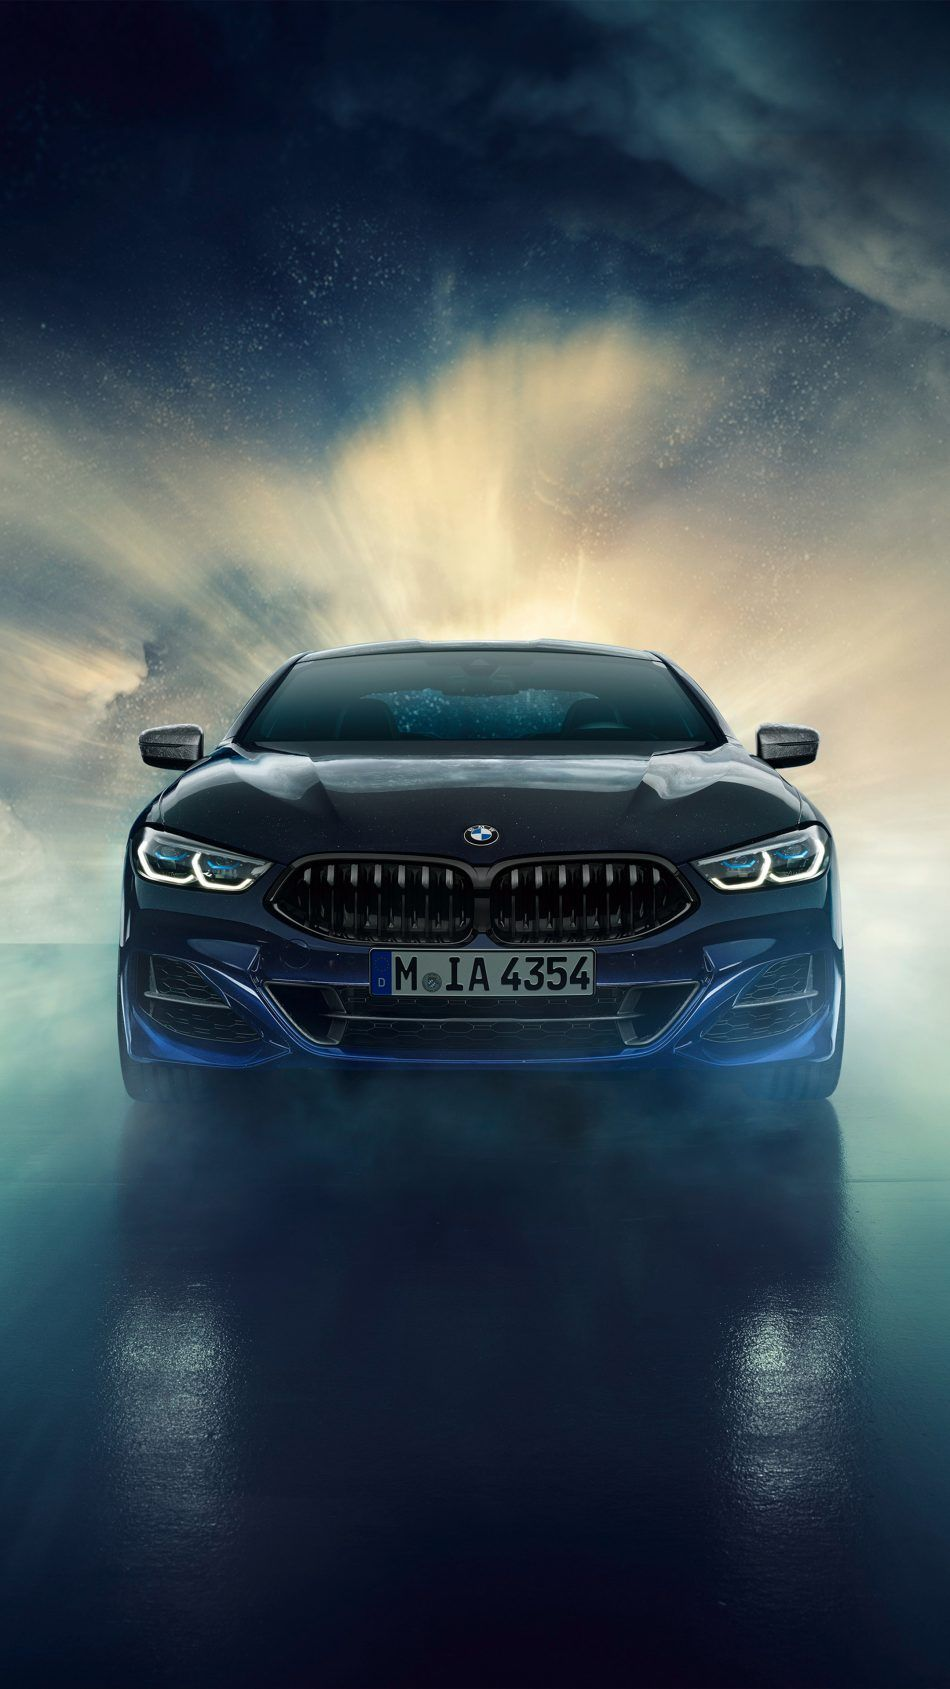 Bmw Individual M850i Xdrive Night Sky Bmw Wallpapers Bmw Car